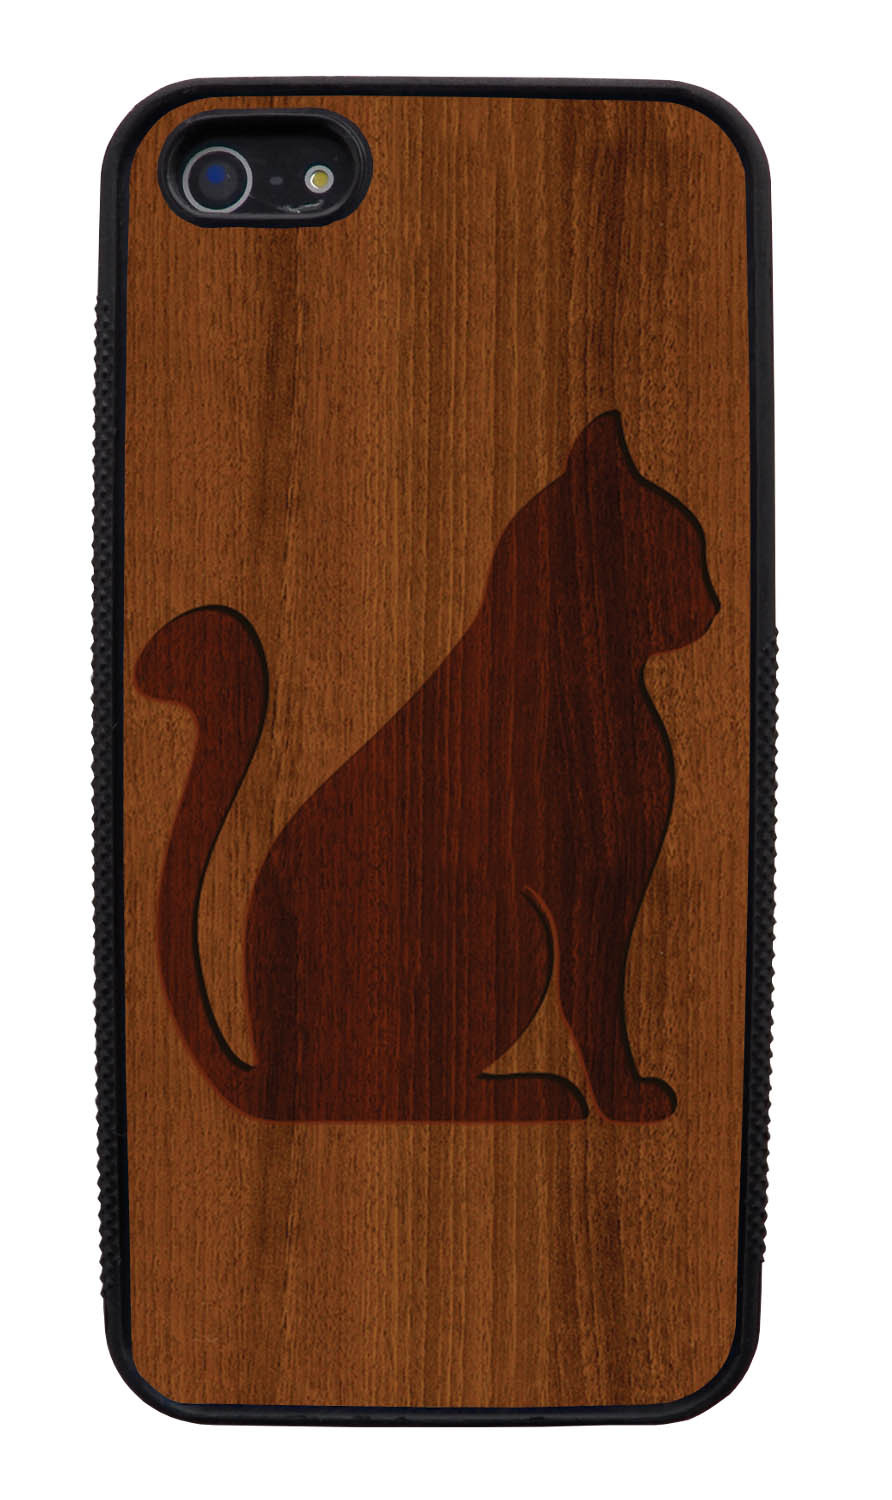 Apple iPhone 5 / 5S Cat Case - Simulated Cherry Wood Engraving Sitting Cat - Simple Stencils Cutout - Black Slim Rubber Case